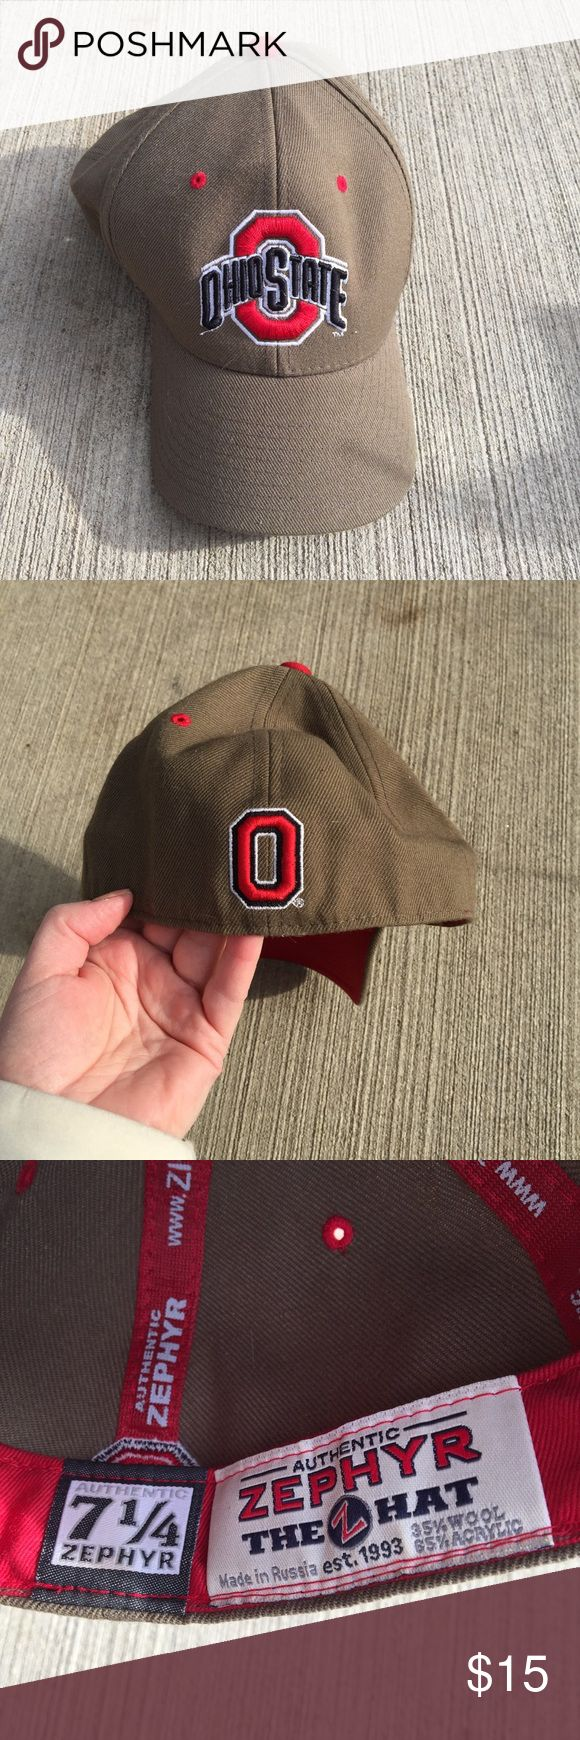 Ohio State Hat Authentic Zephyr hat size 7 1/2 Accessories Hats